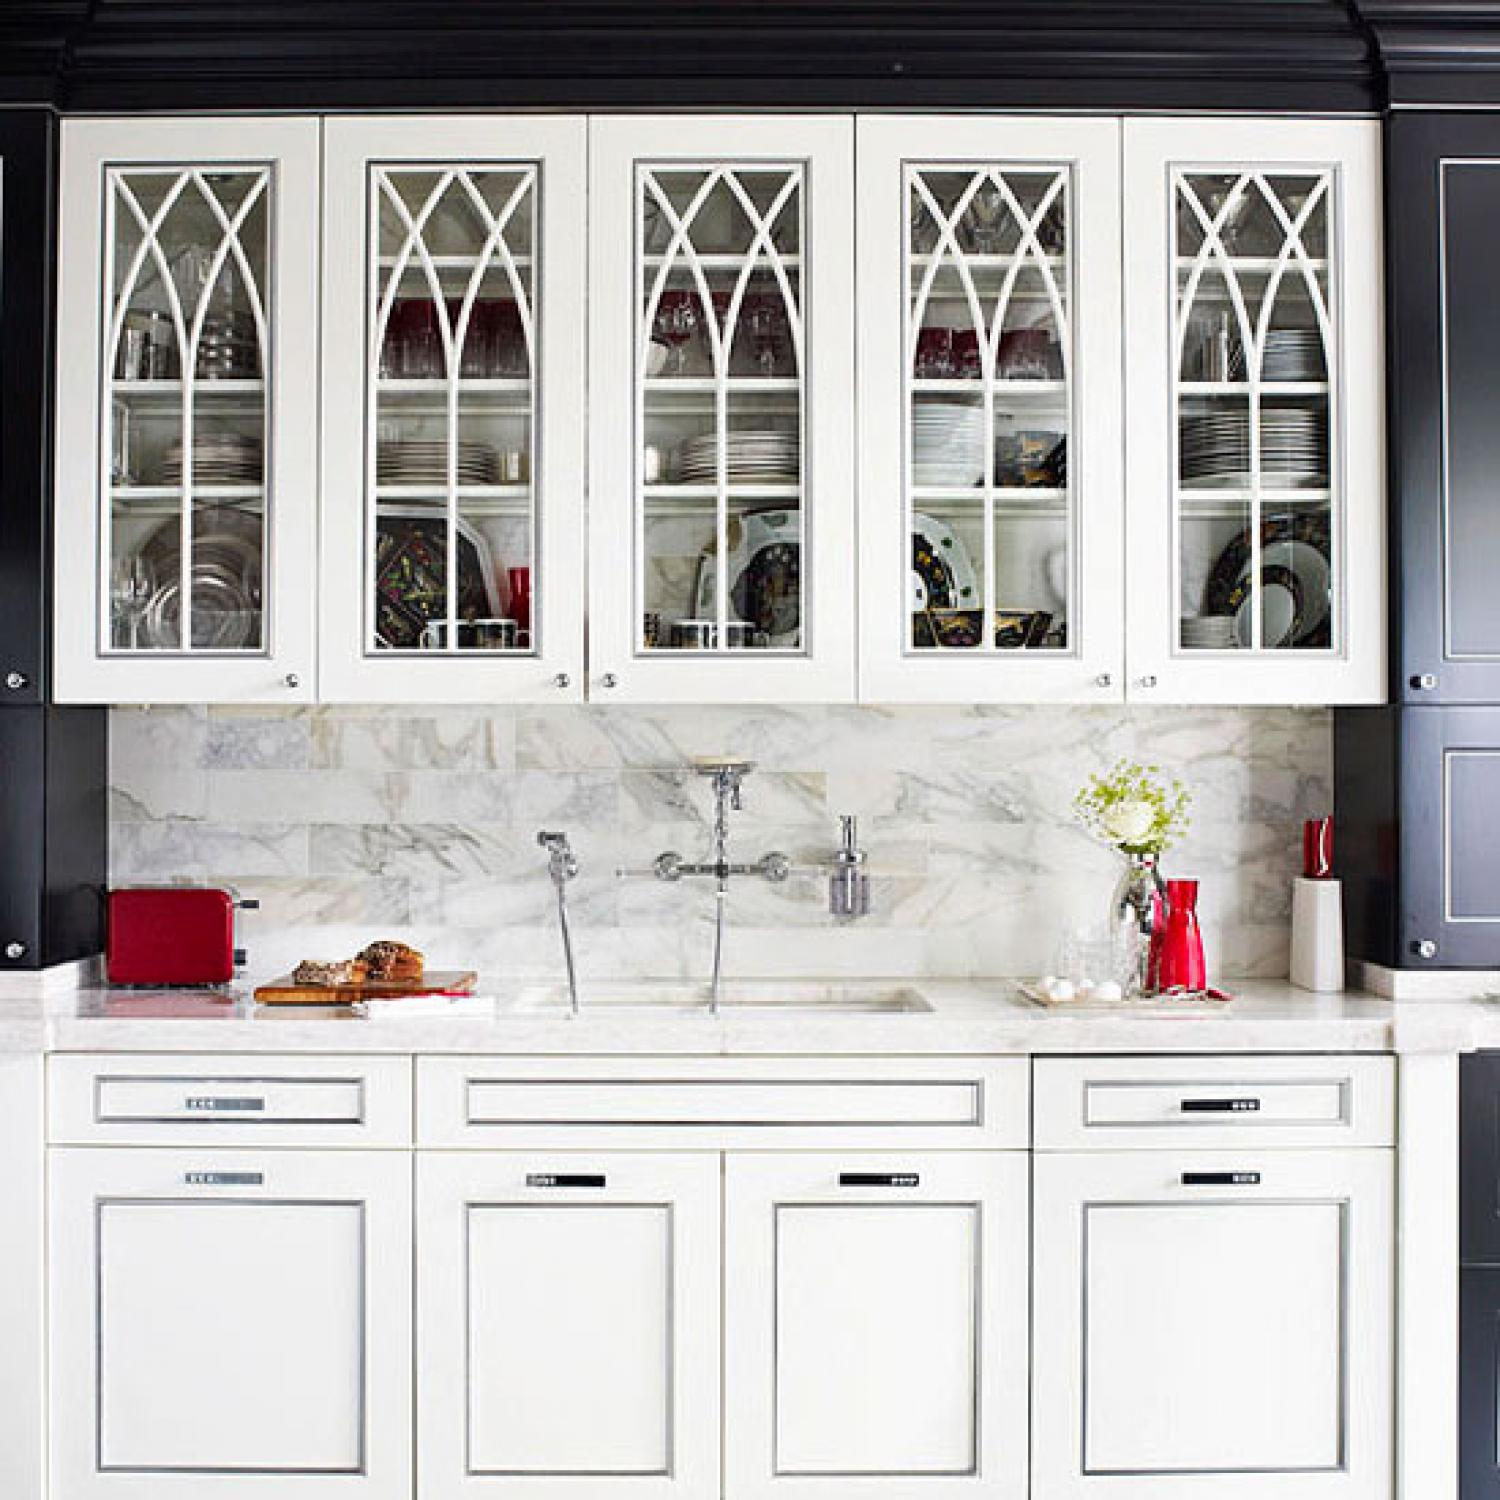 Distinctive kitchen cabinets with glass front doors traditional home eventelaan Images